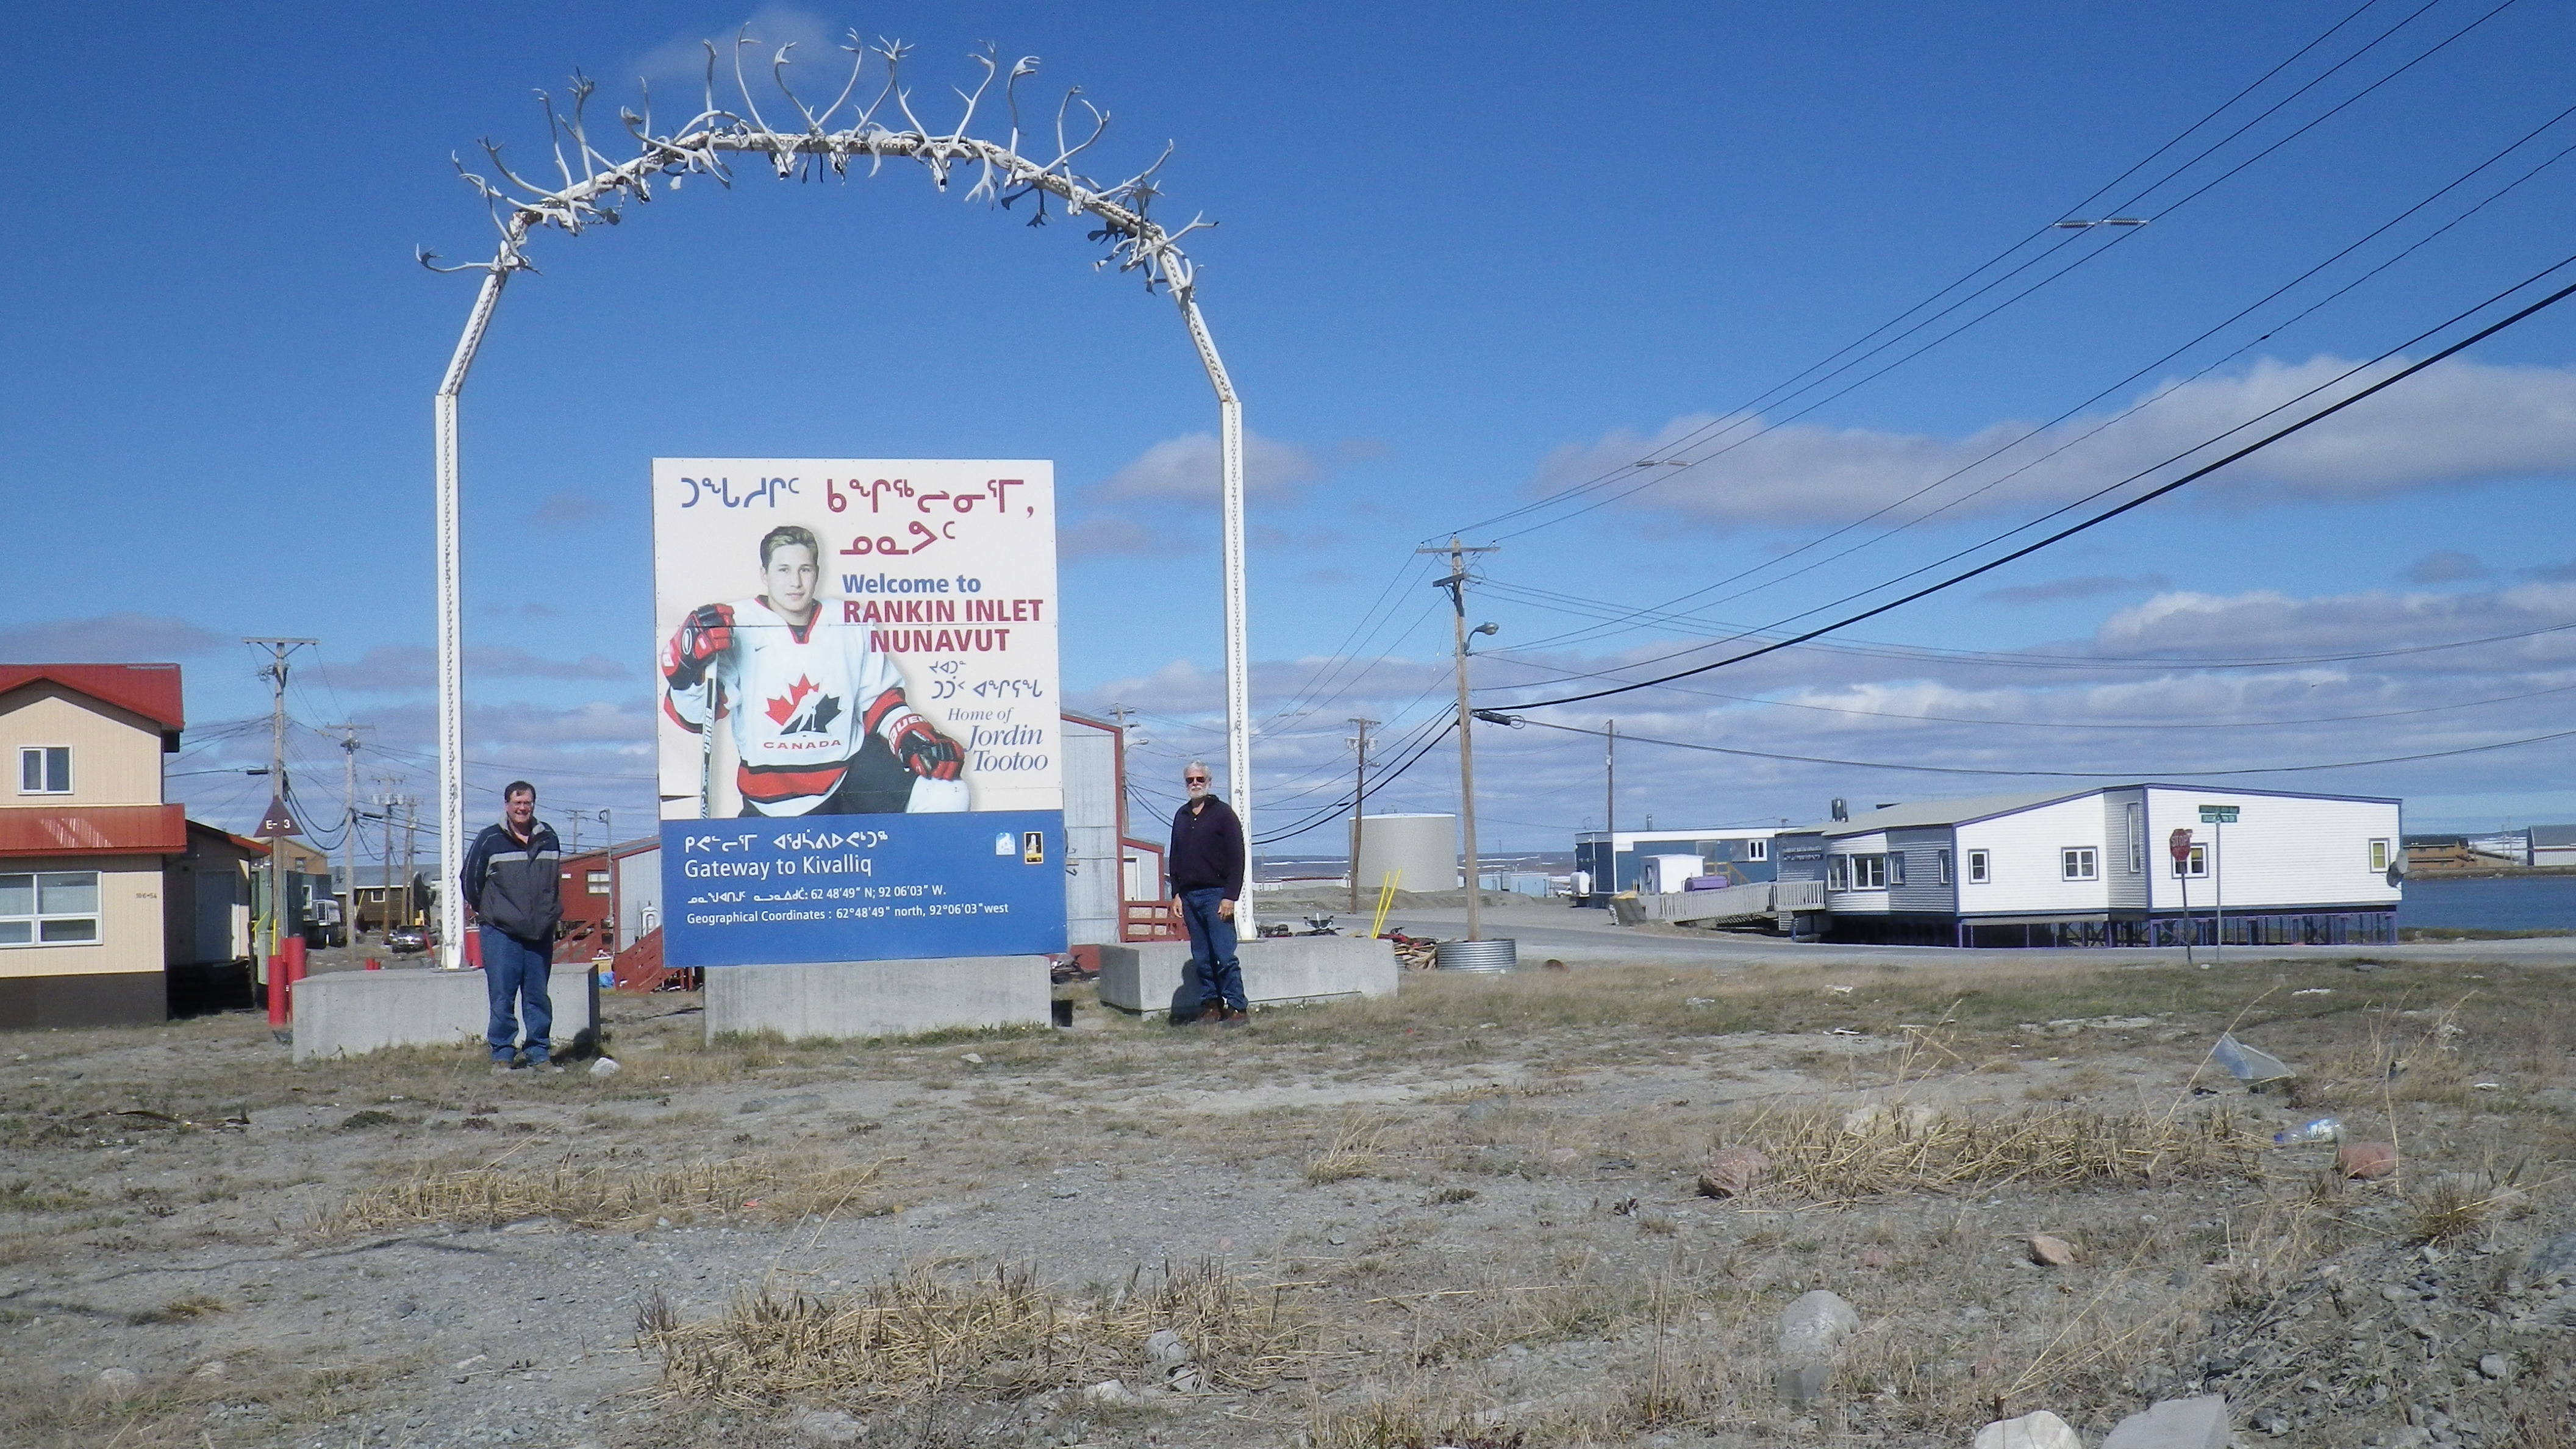 Welcome to Rankin Inlet